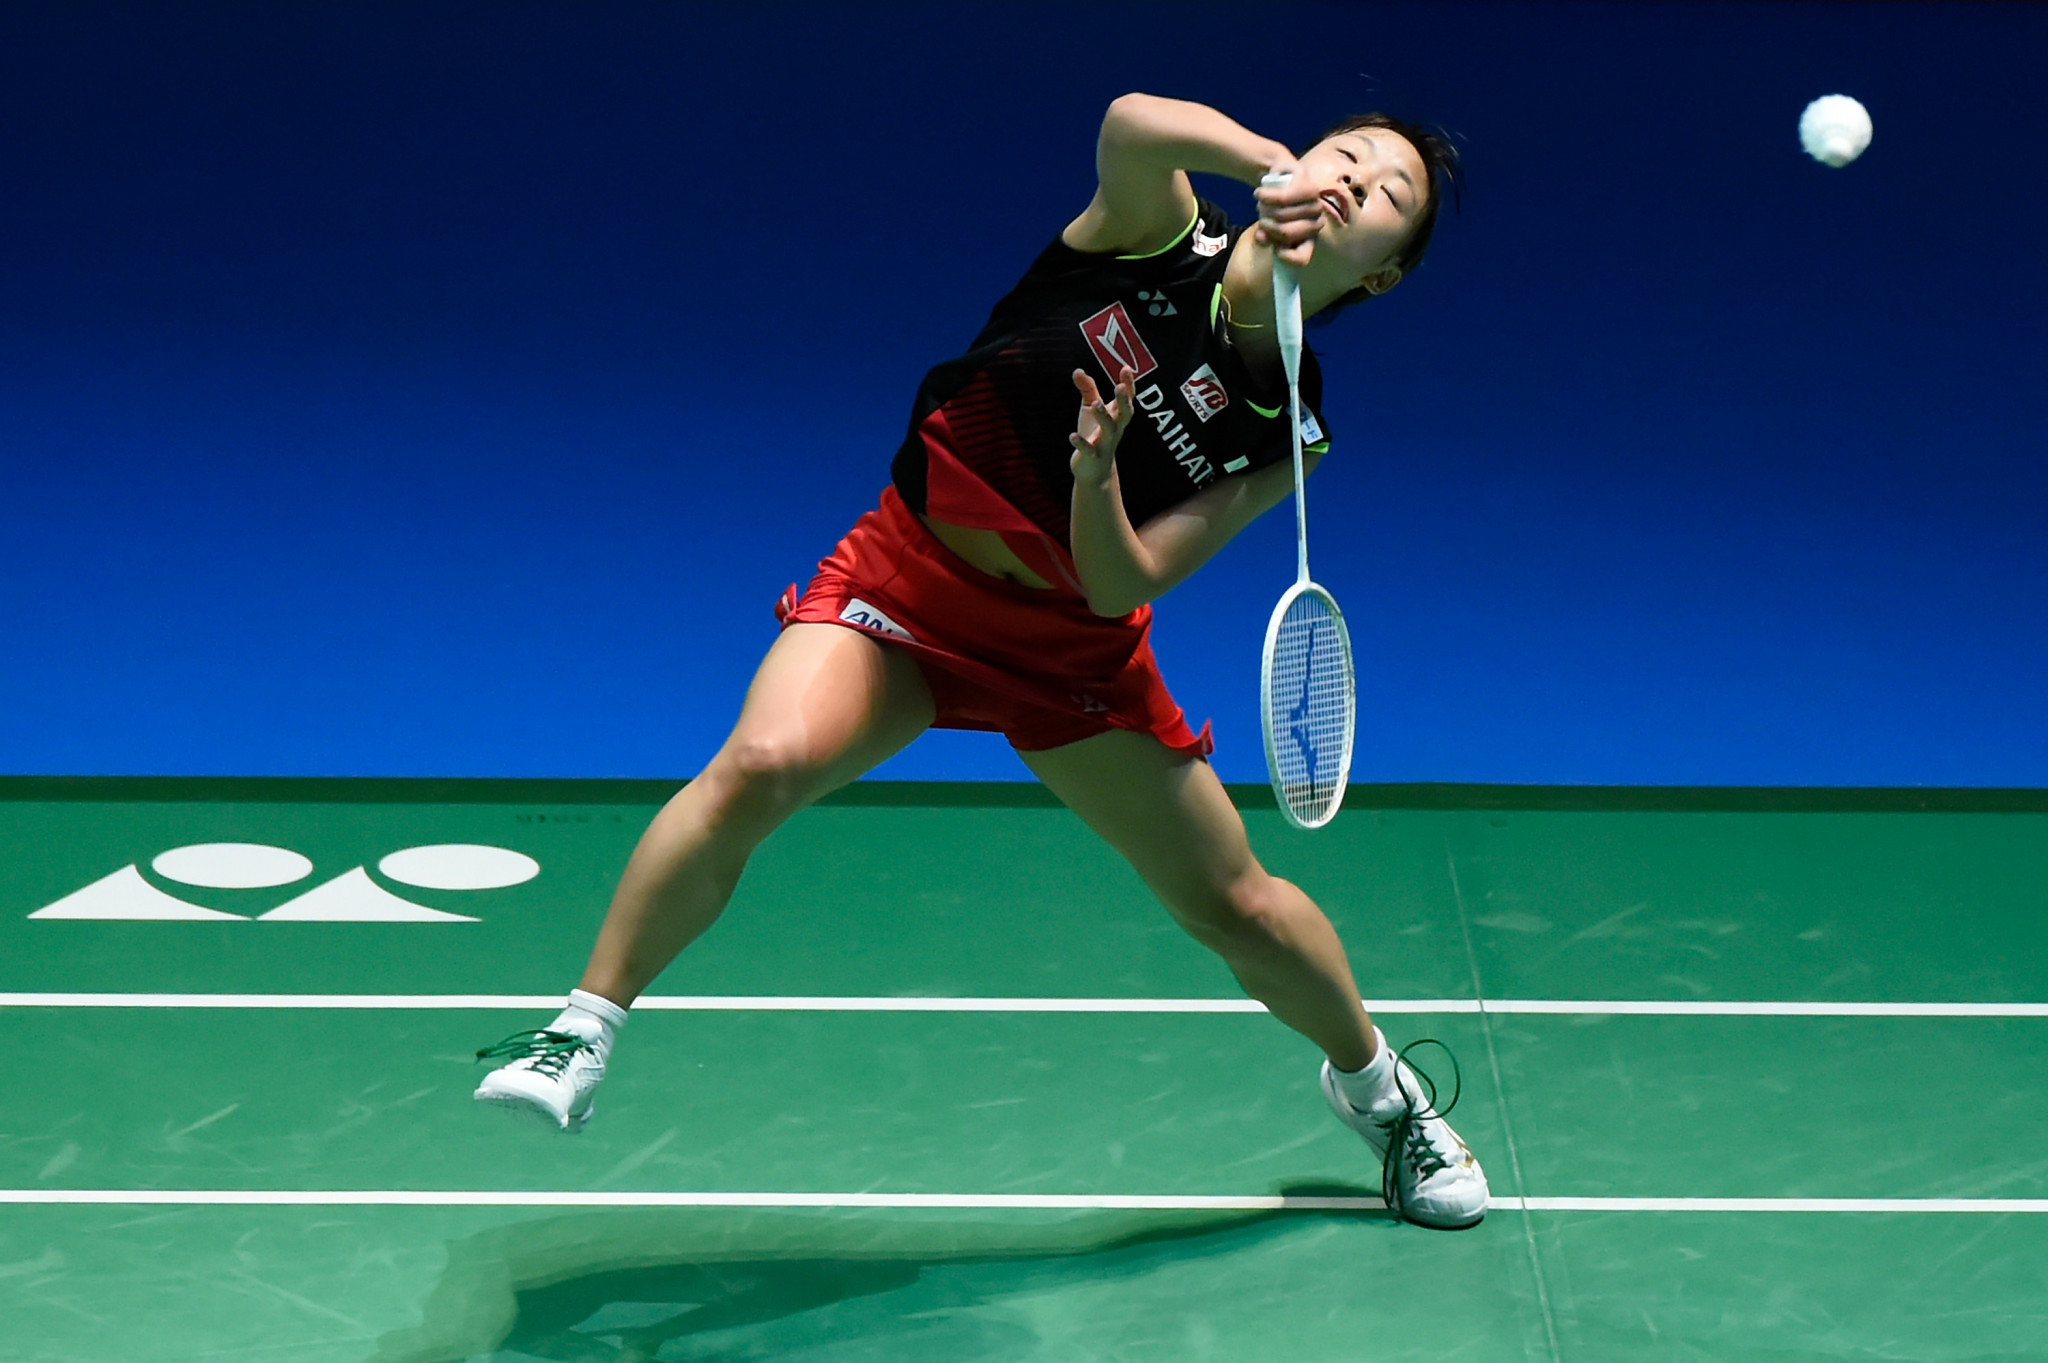 Women's second seed Nozomi Okuhara also recorded a straight games win in her first round match at the BWF Denmark Open  ©Getty Images